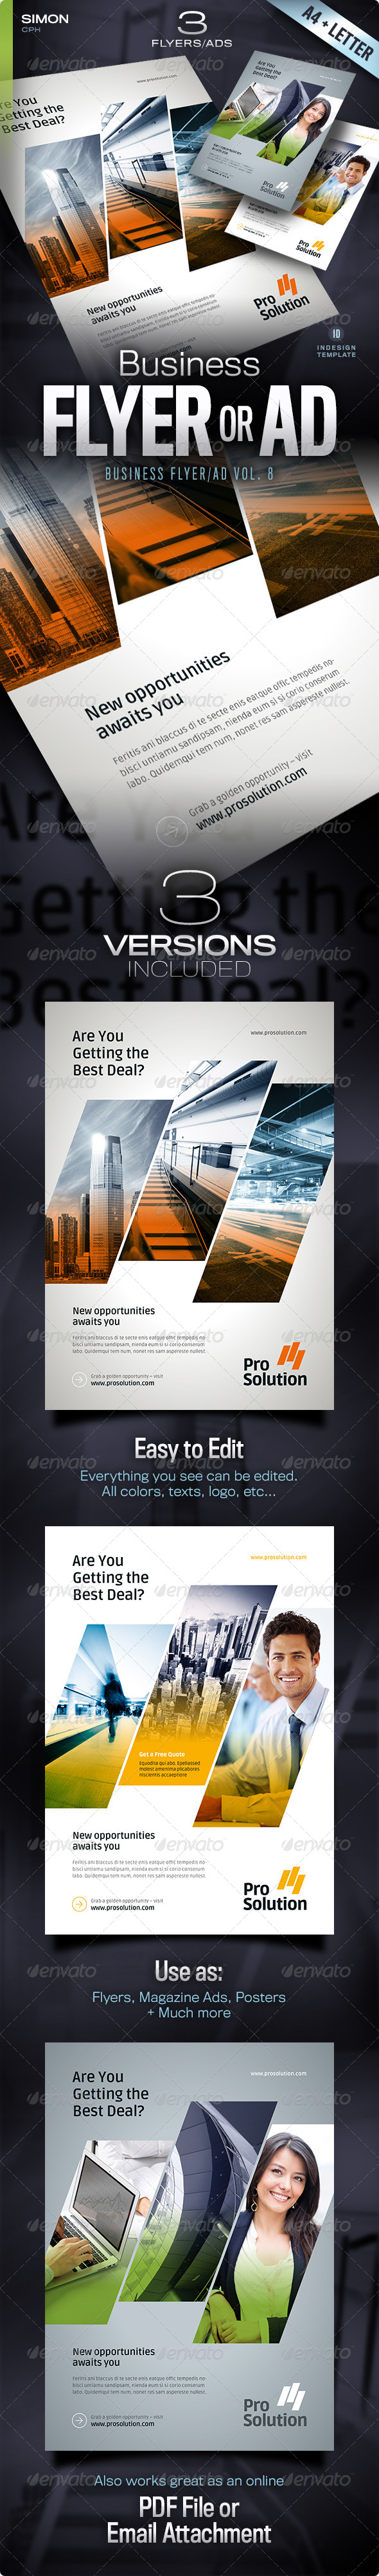 GraphicRiver Business Flyer Ad Vol 8 5333249